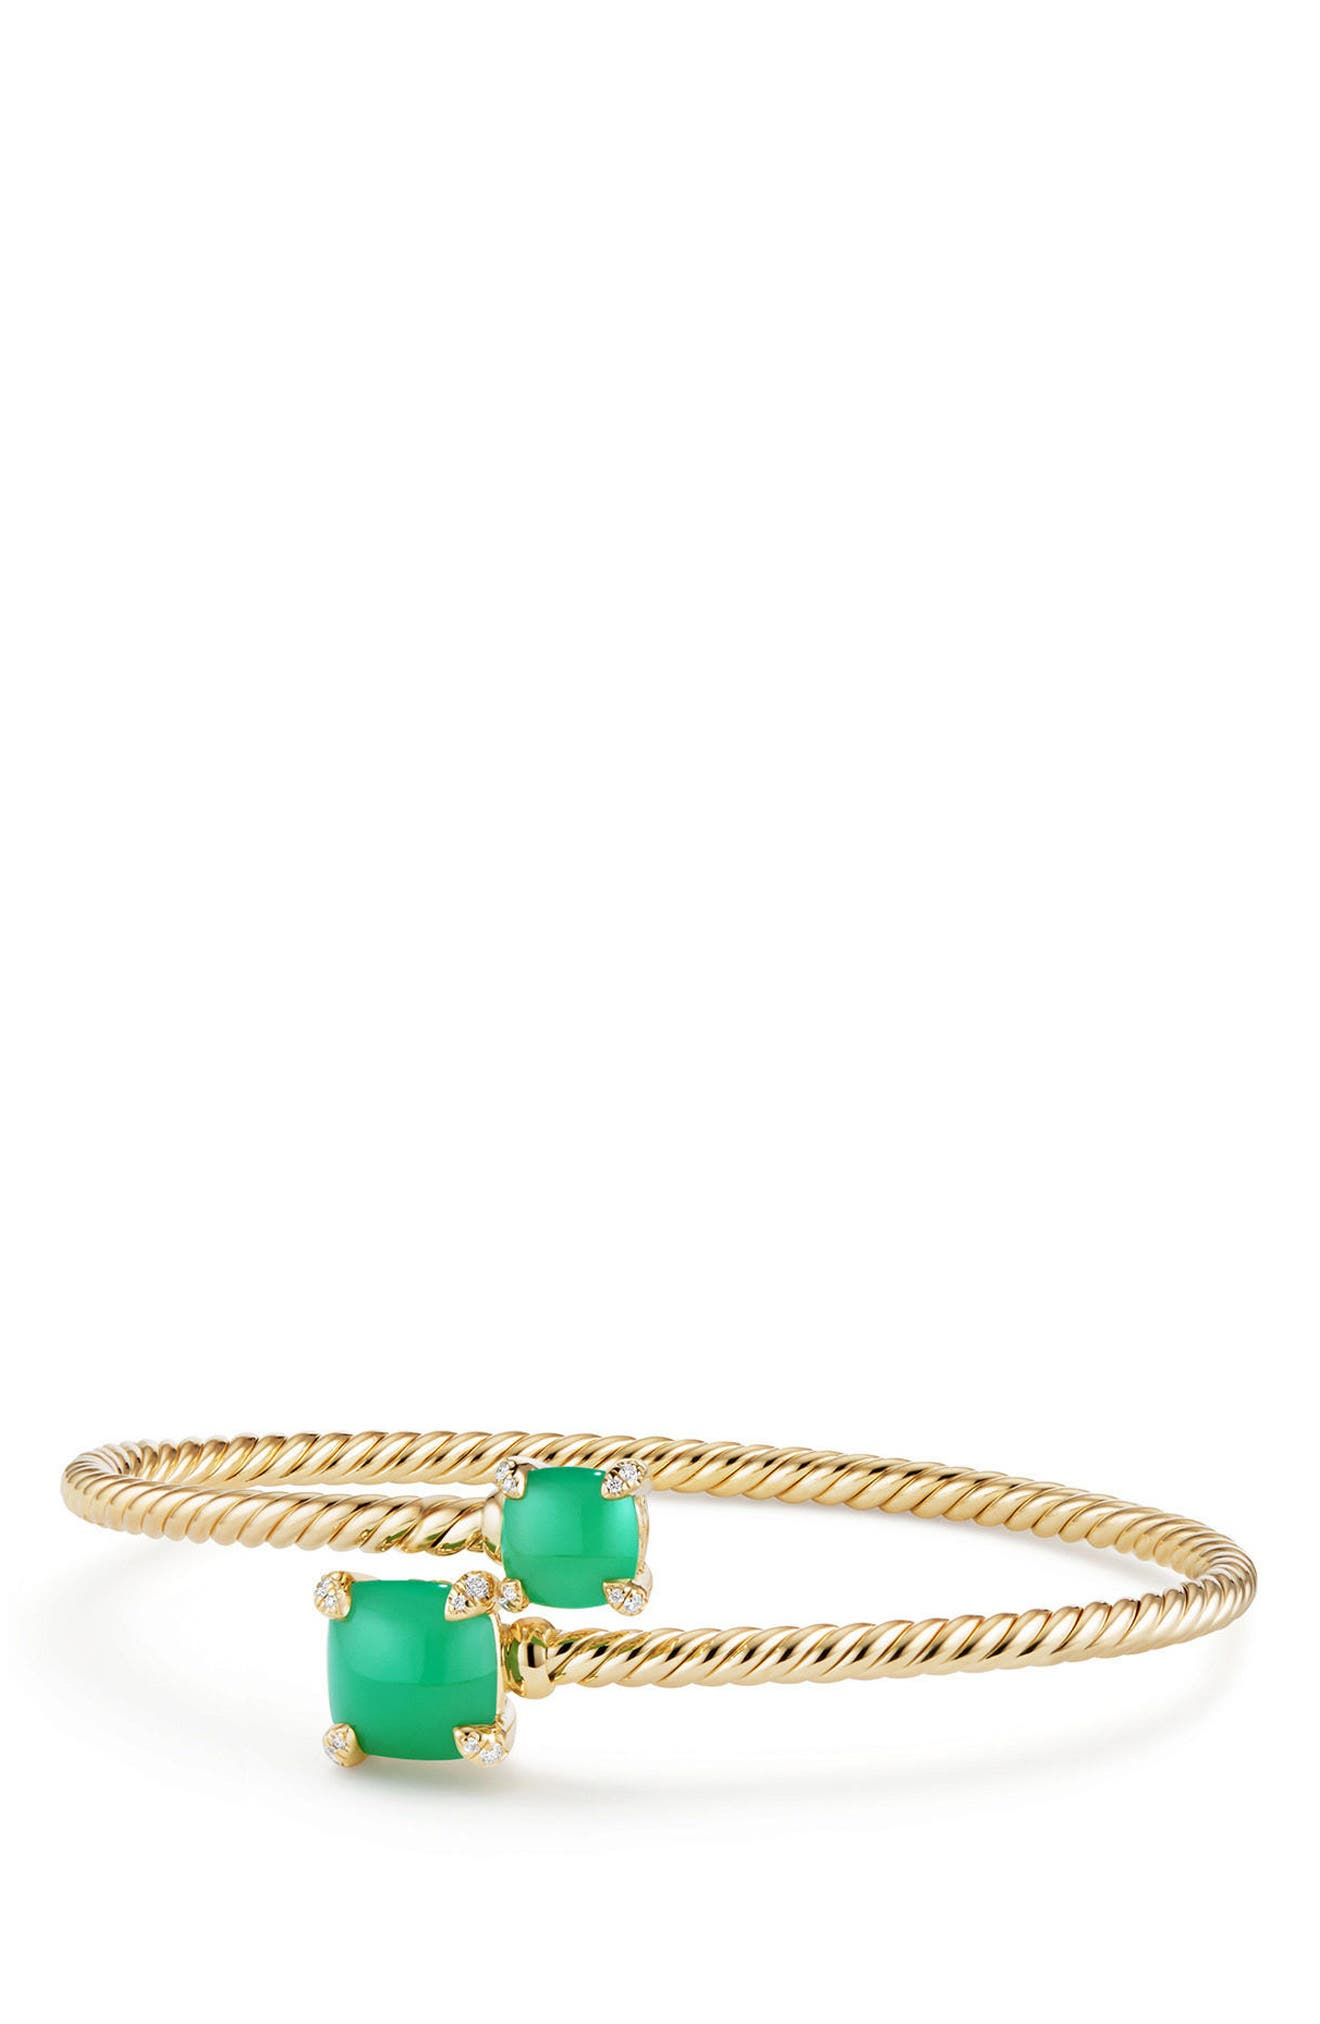 Châtelaine Bypass Bracelet with Semiprecious Stone & Diamonds in 18K Gold,                         Main,                         color, CHRYSOPRASE